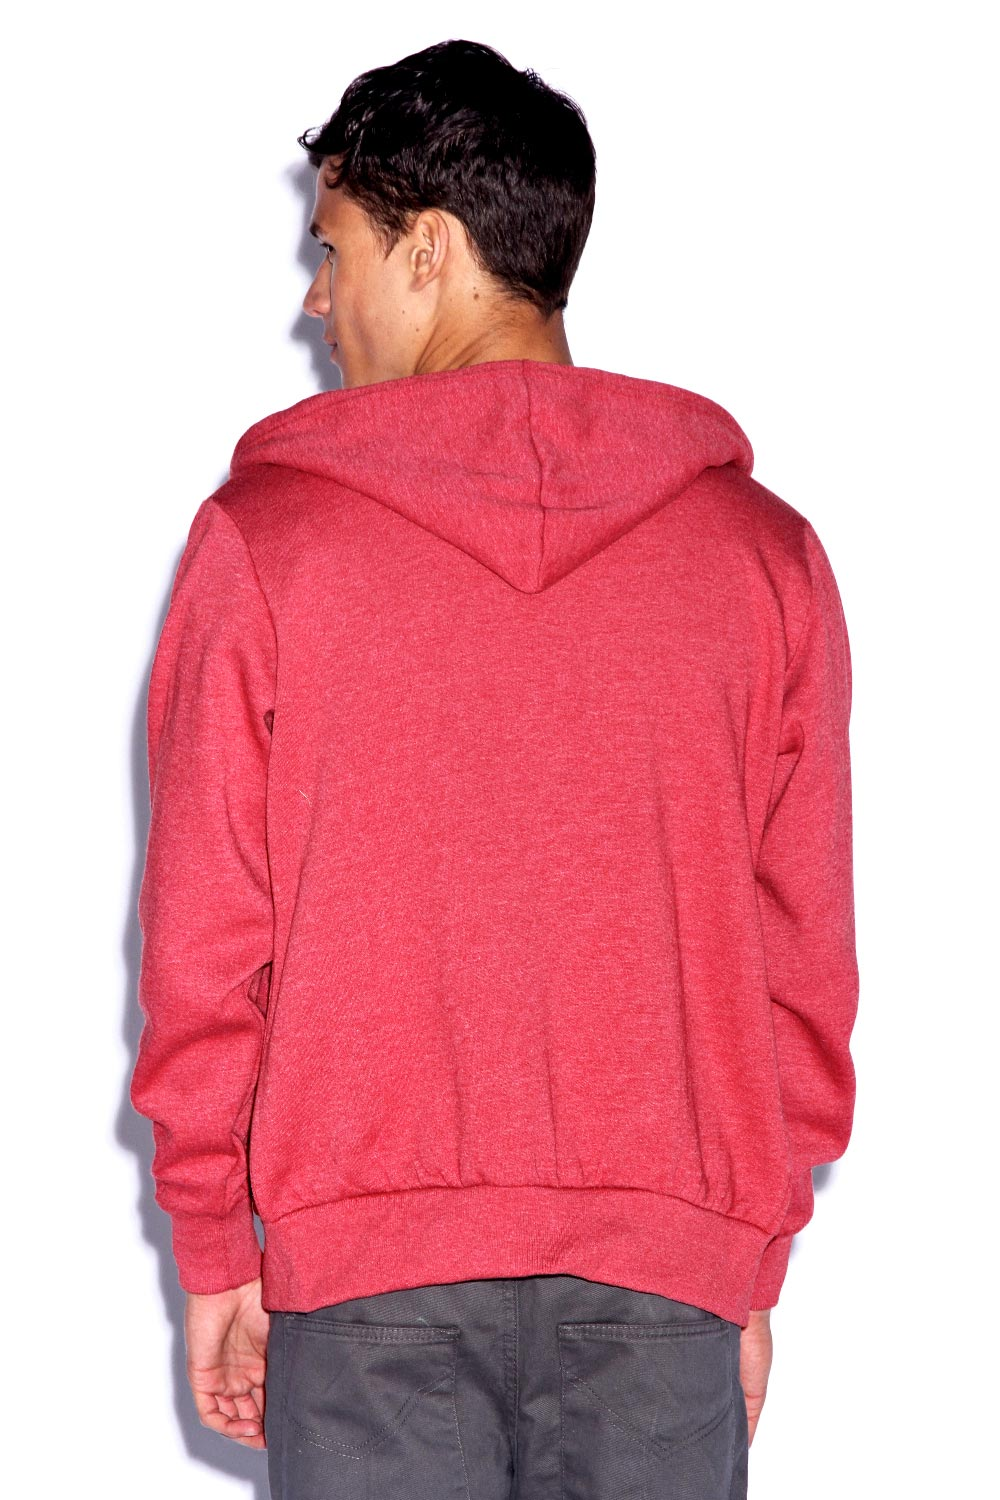 Boohoo-Mens-Red-Melange-Basic-Plain-Full-Zip-Hoody-Top